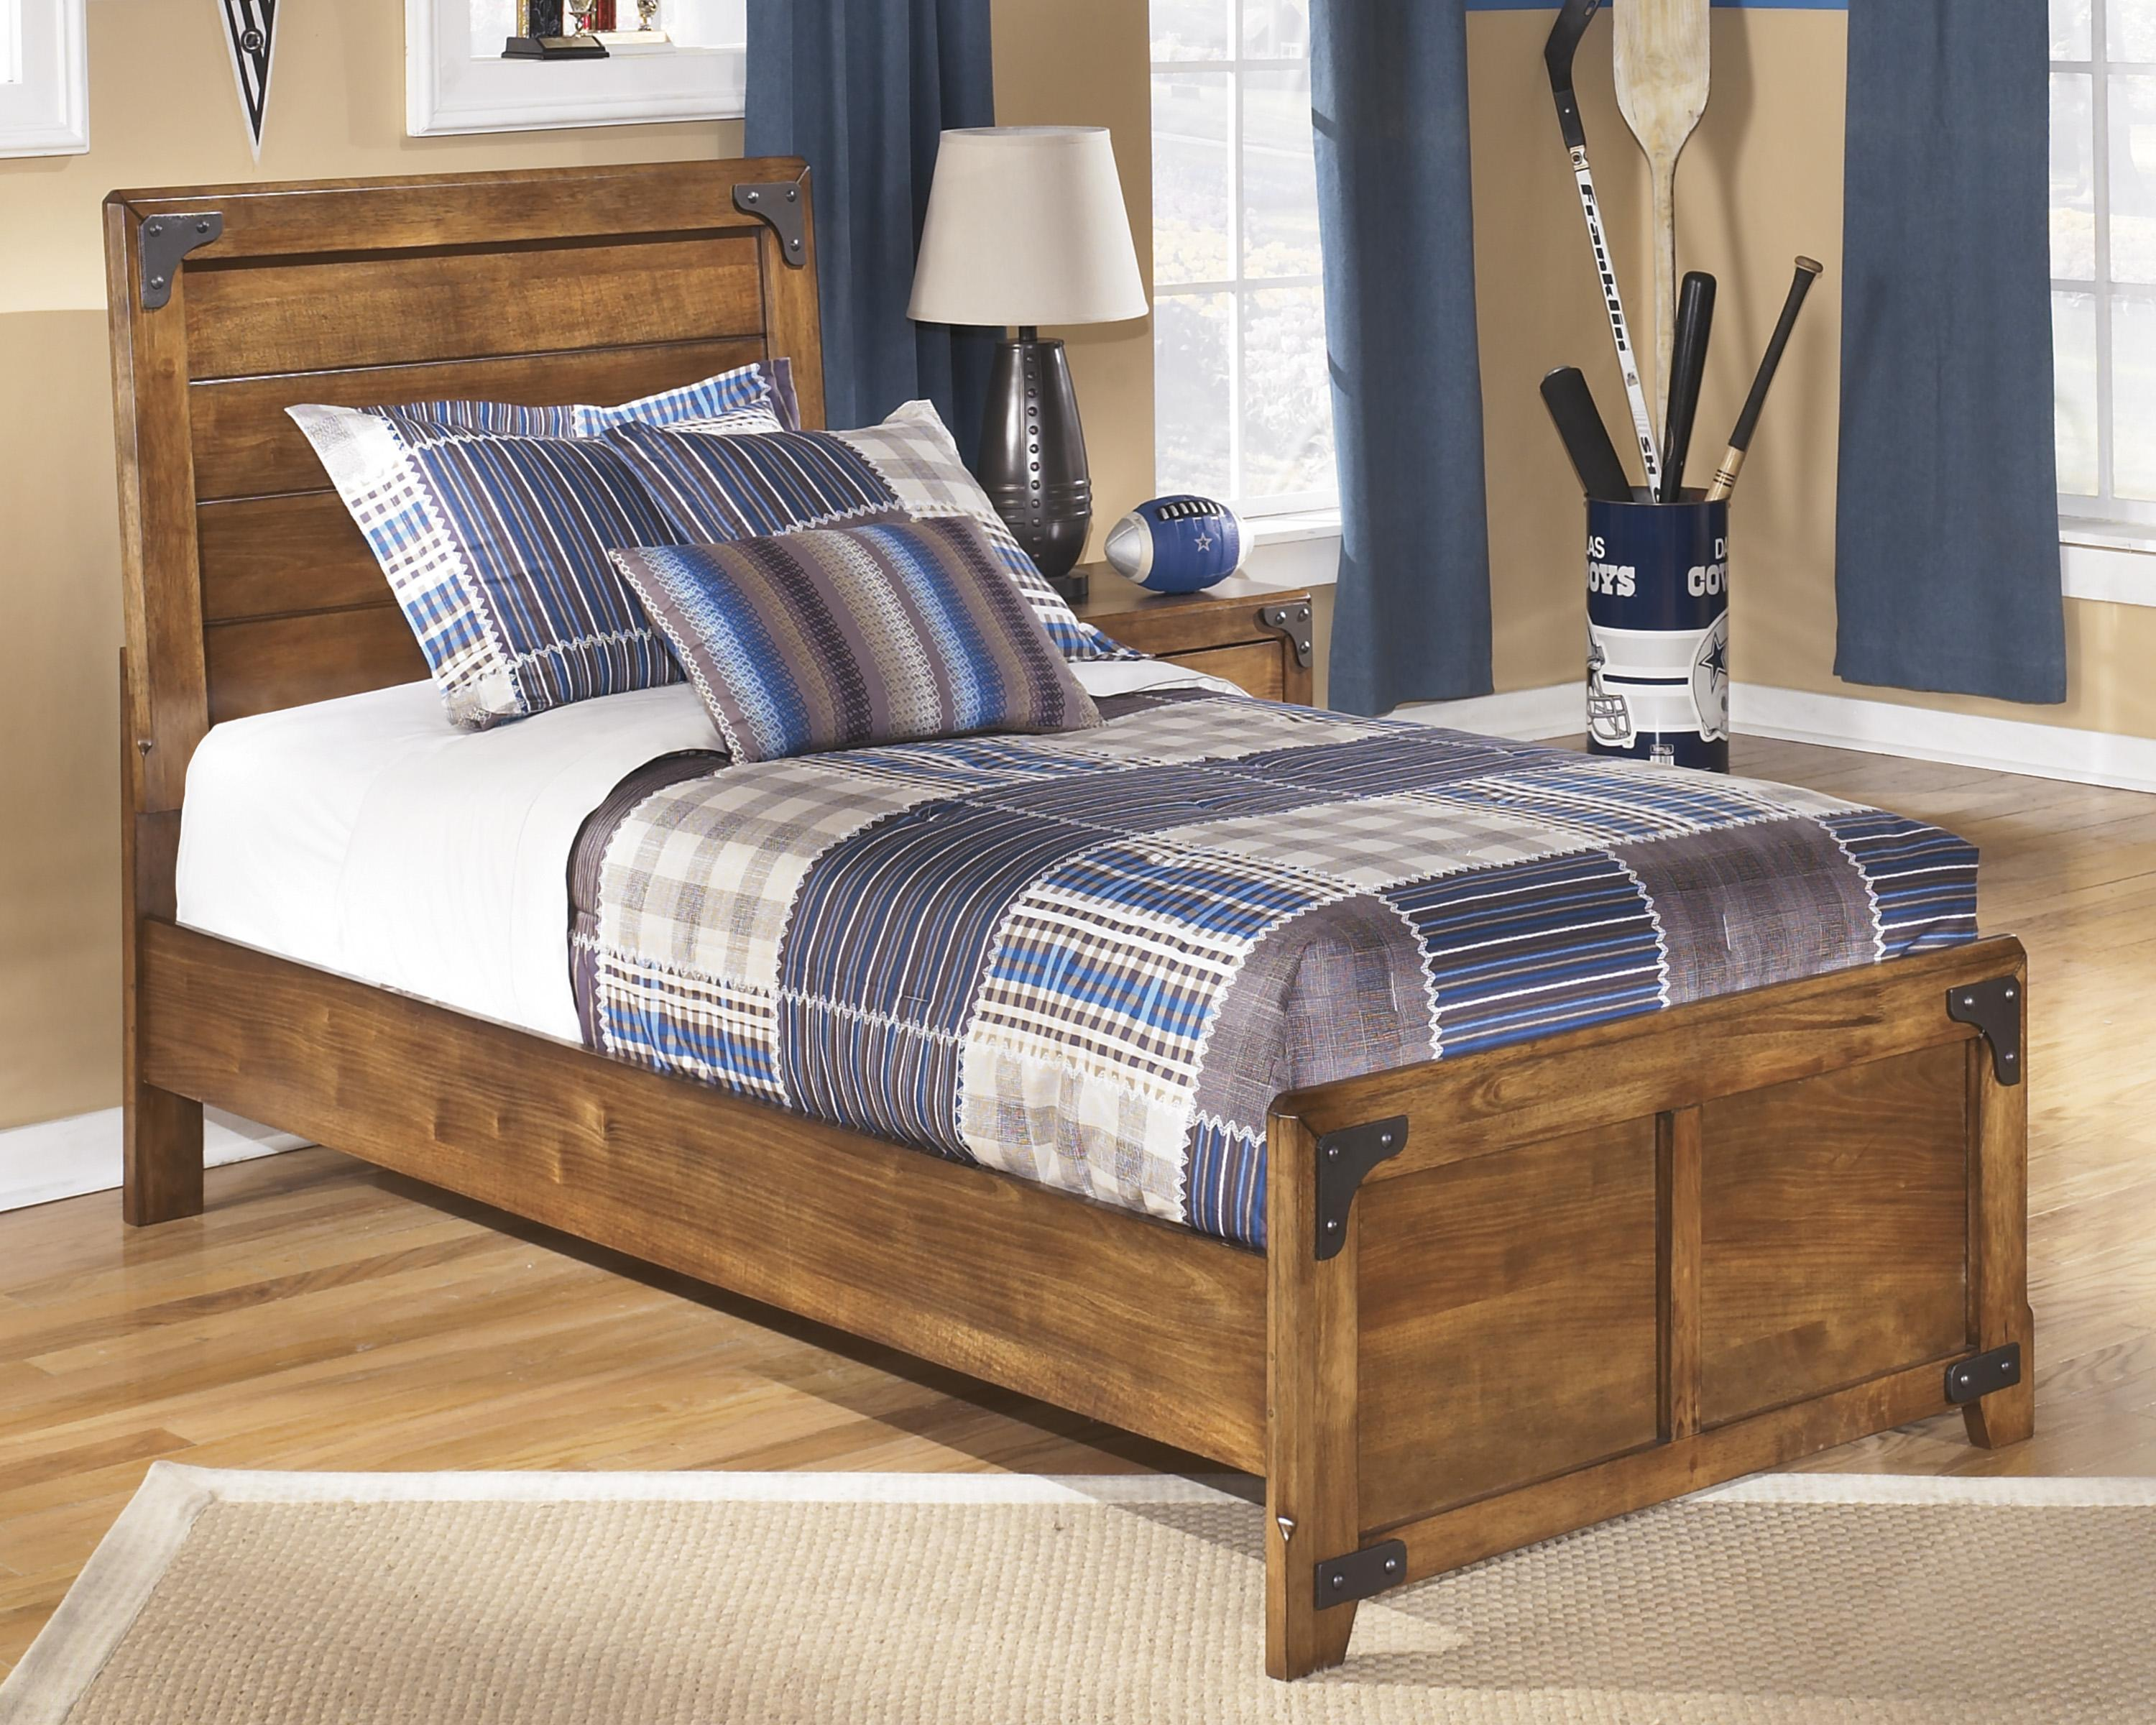 Signature Design by Ashley Delburne Twin Panel Bed - Item Number: B362-63+83